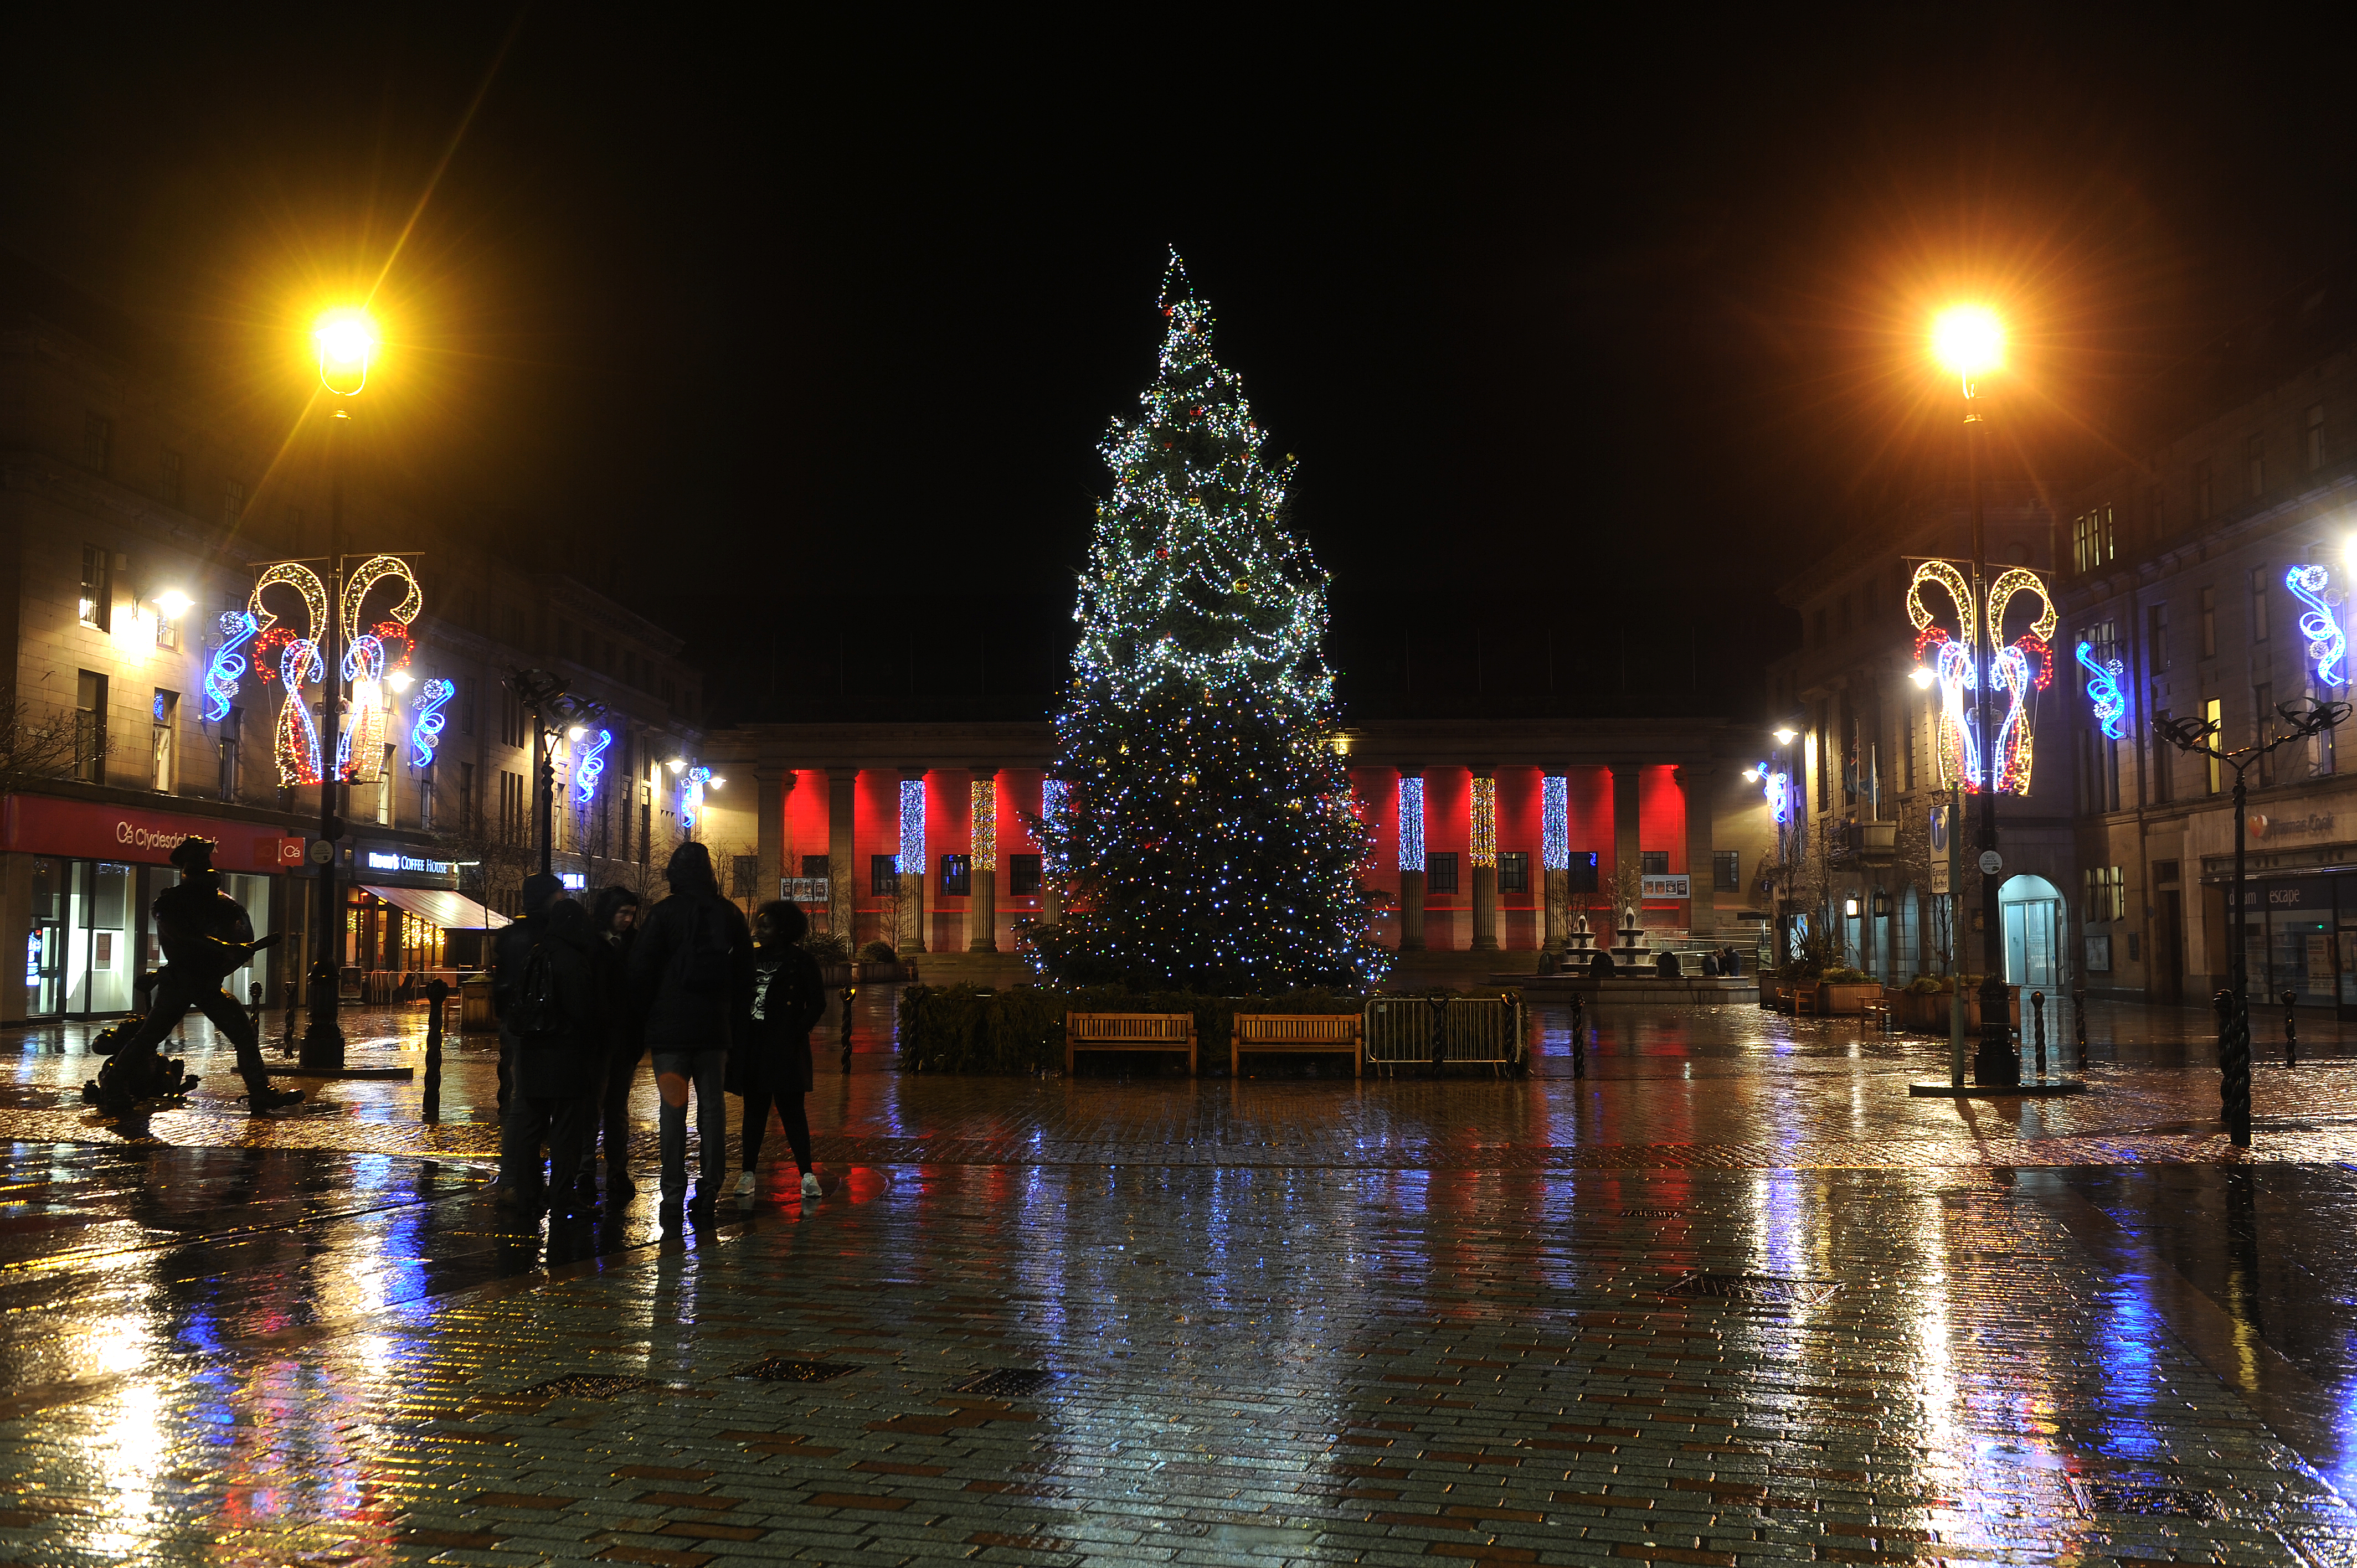 A stunning Christmas display at Dundee City Square. But is Dundee capitalising on the opportunities offered by the festive season?